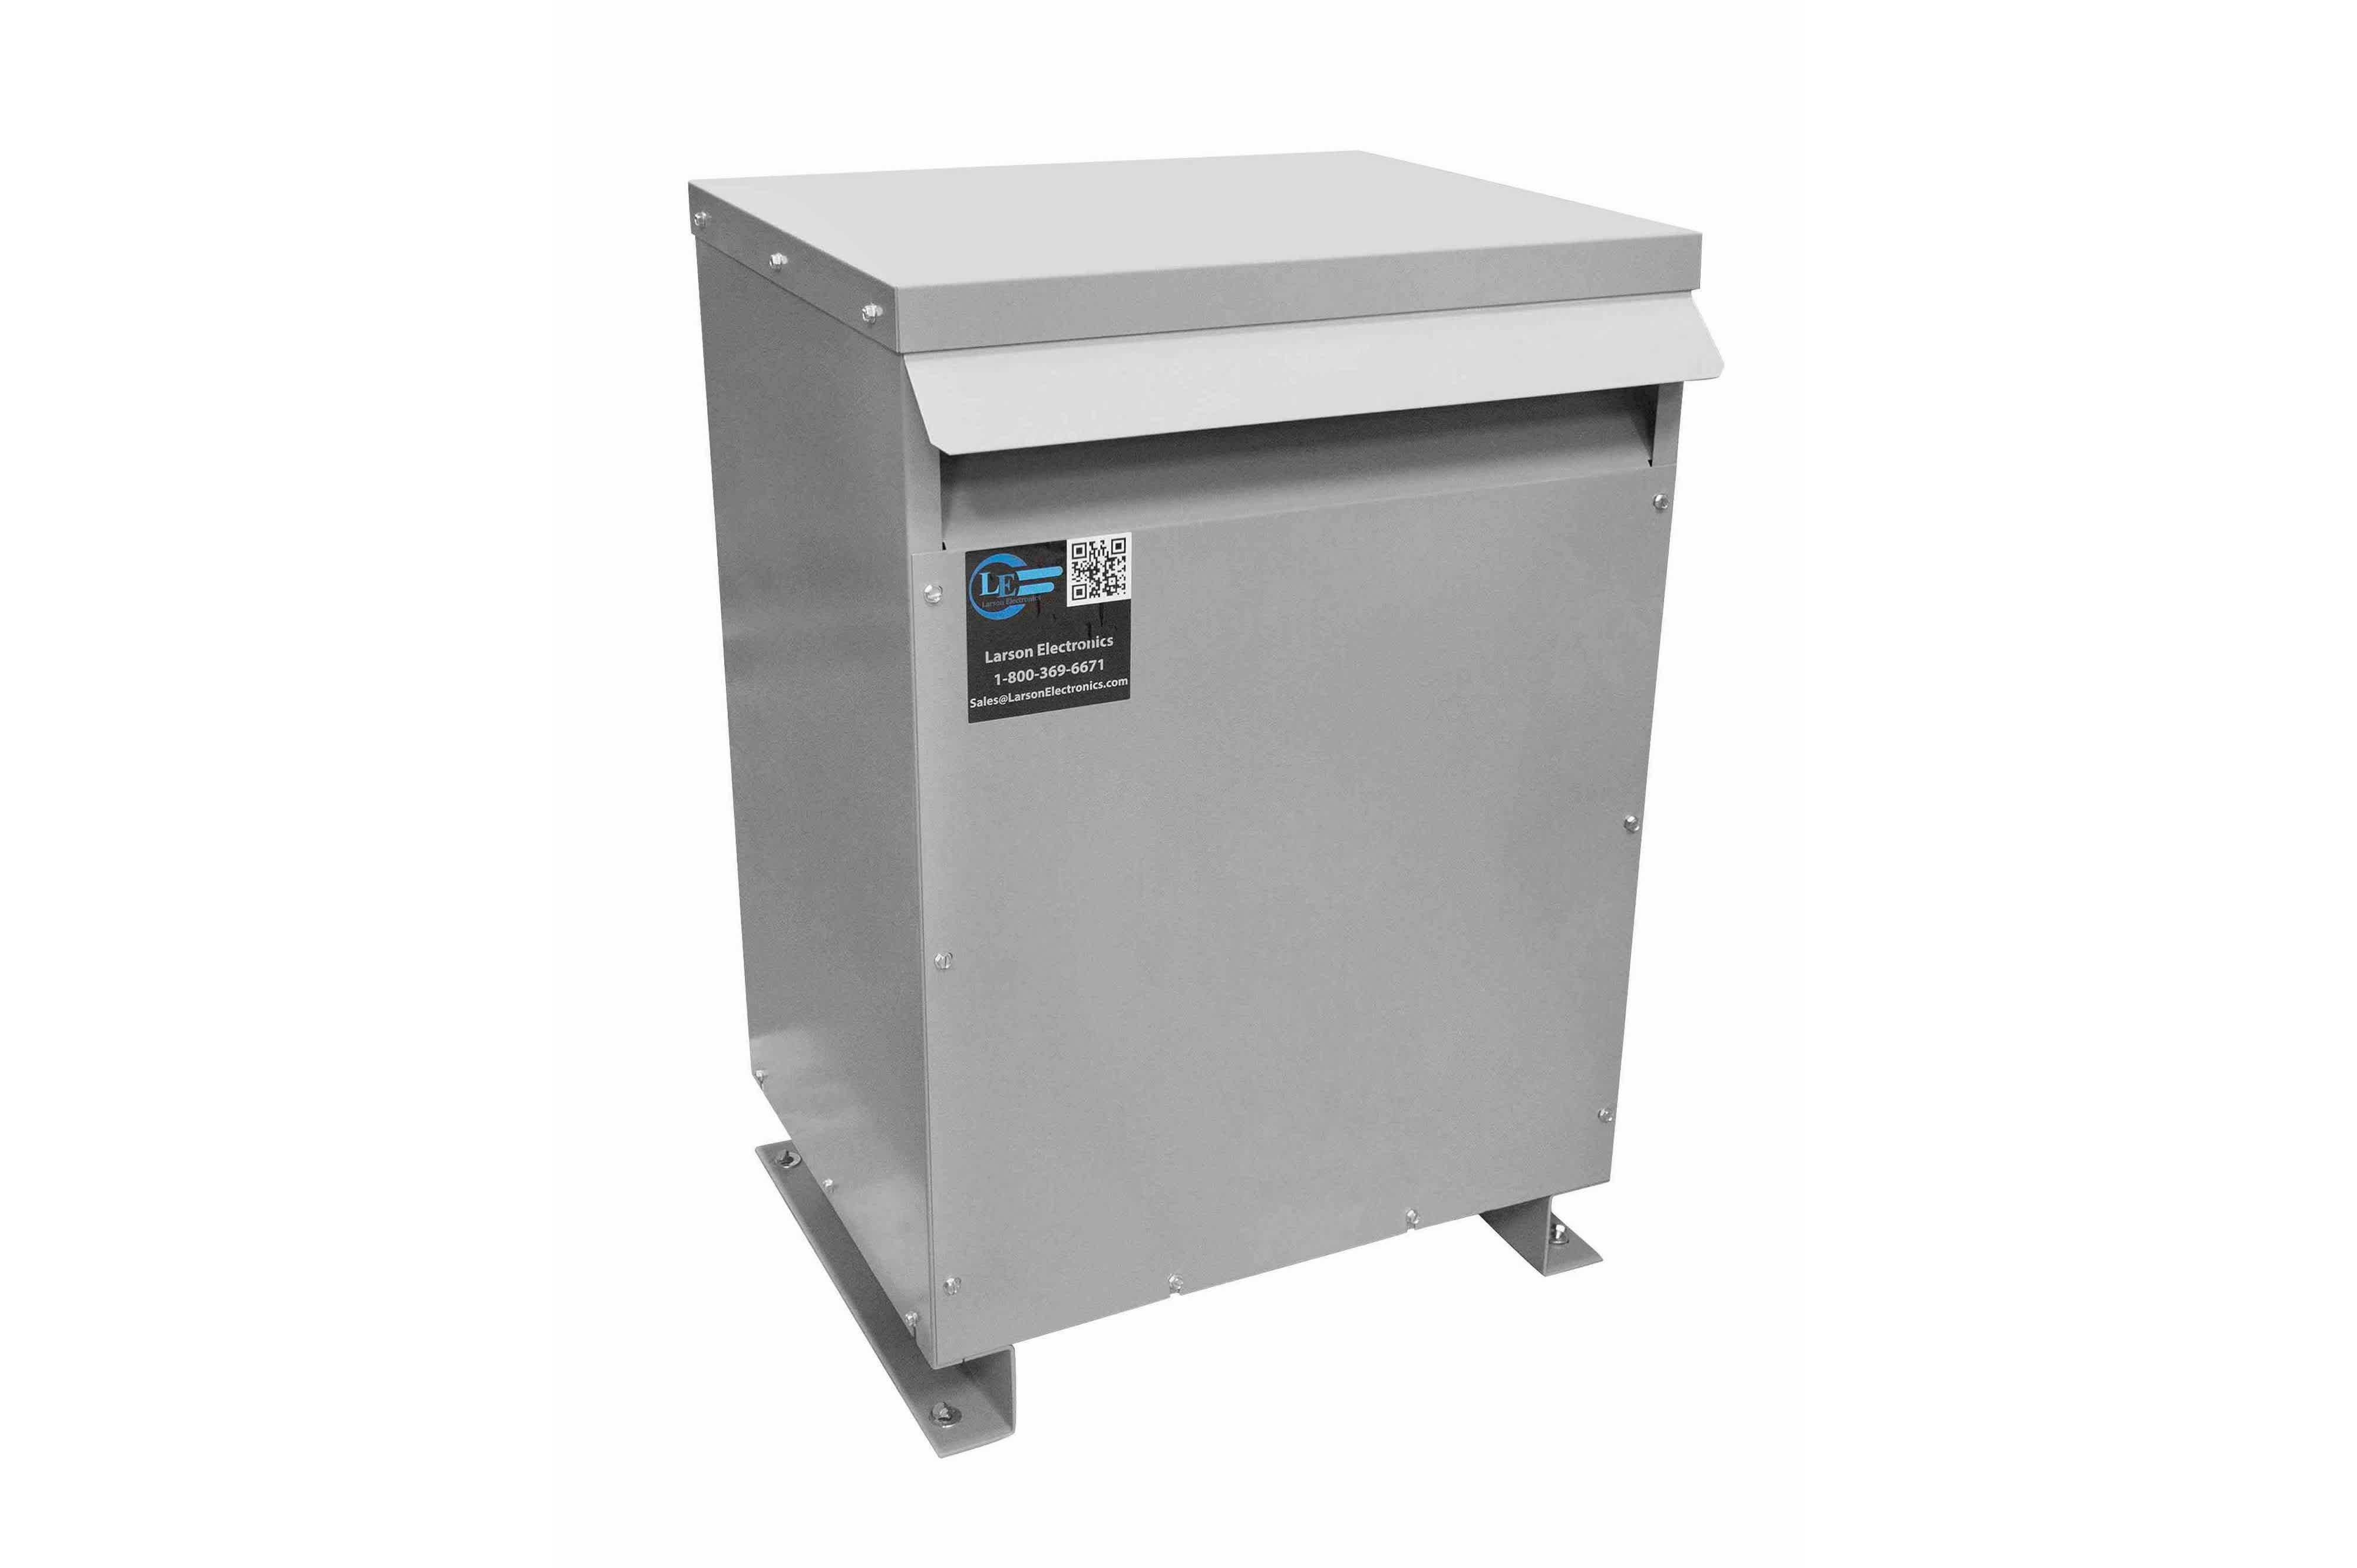 28 kVA 3PH DOE Transformer, 480V Delta Primary, 600Y/347 Wye-N Secondary, N3R, Ventilated, 60 Hz